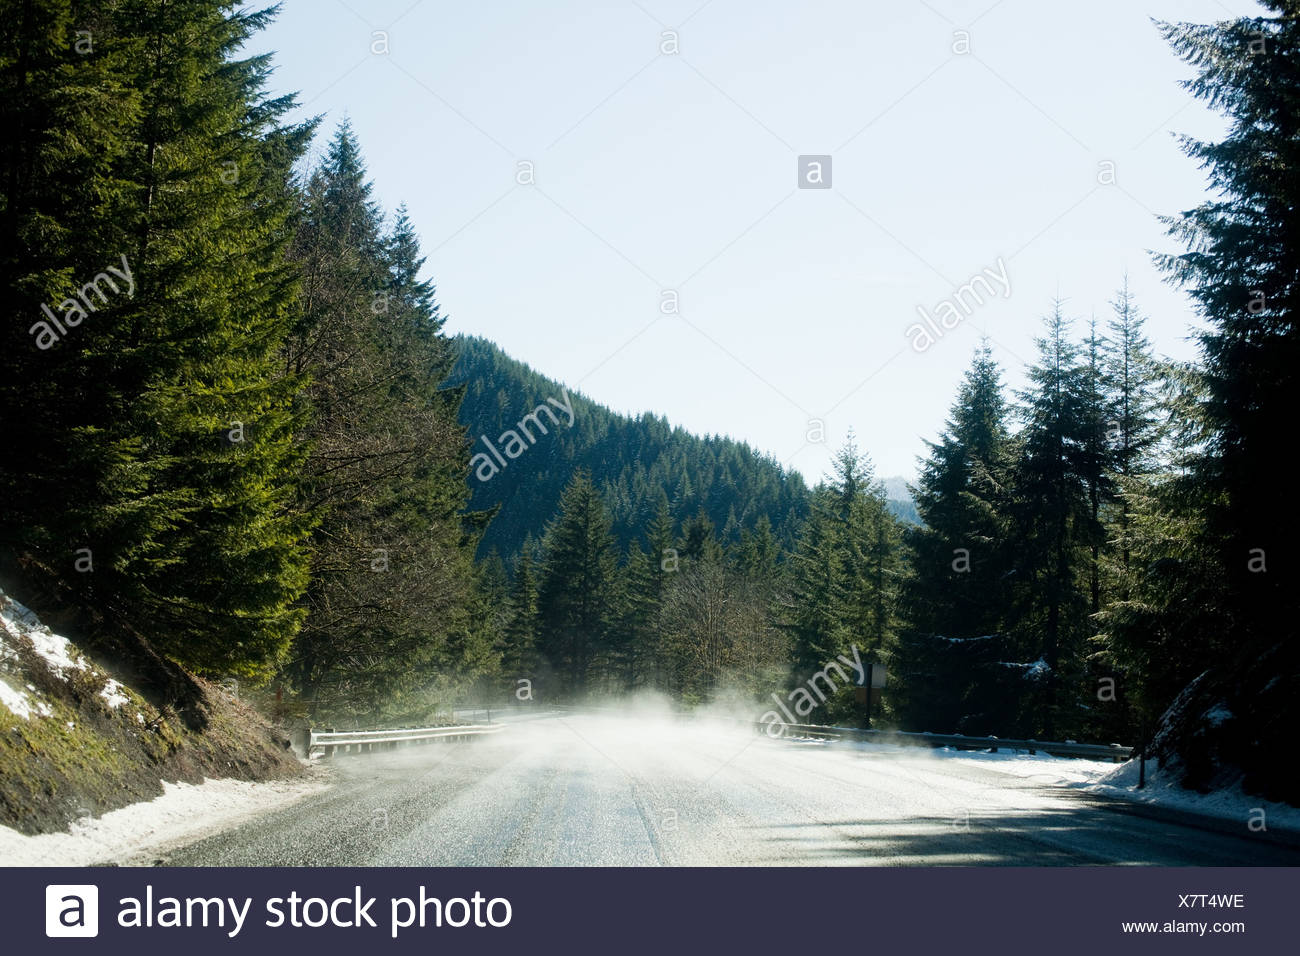 Empty forest road - Stock Image